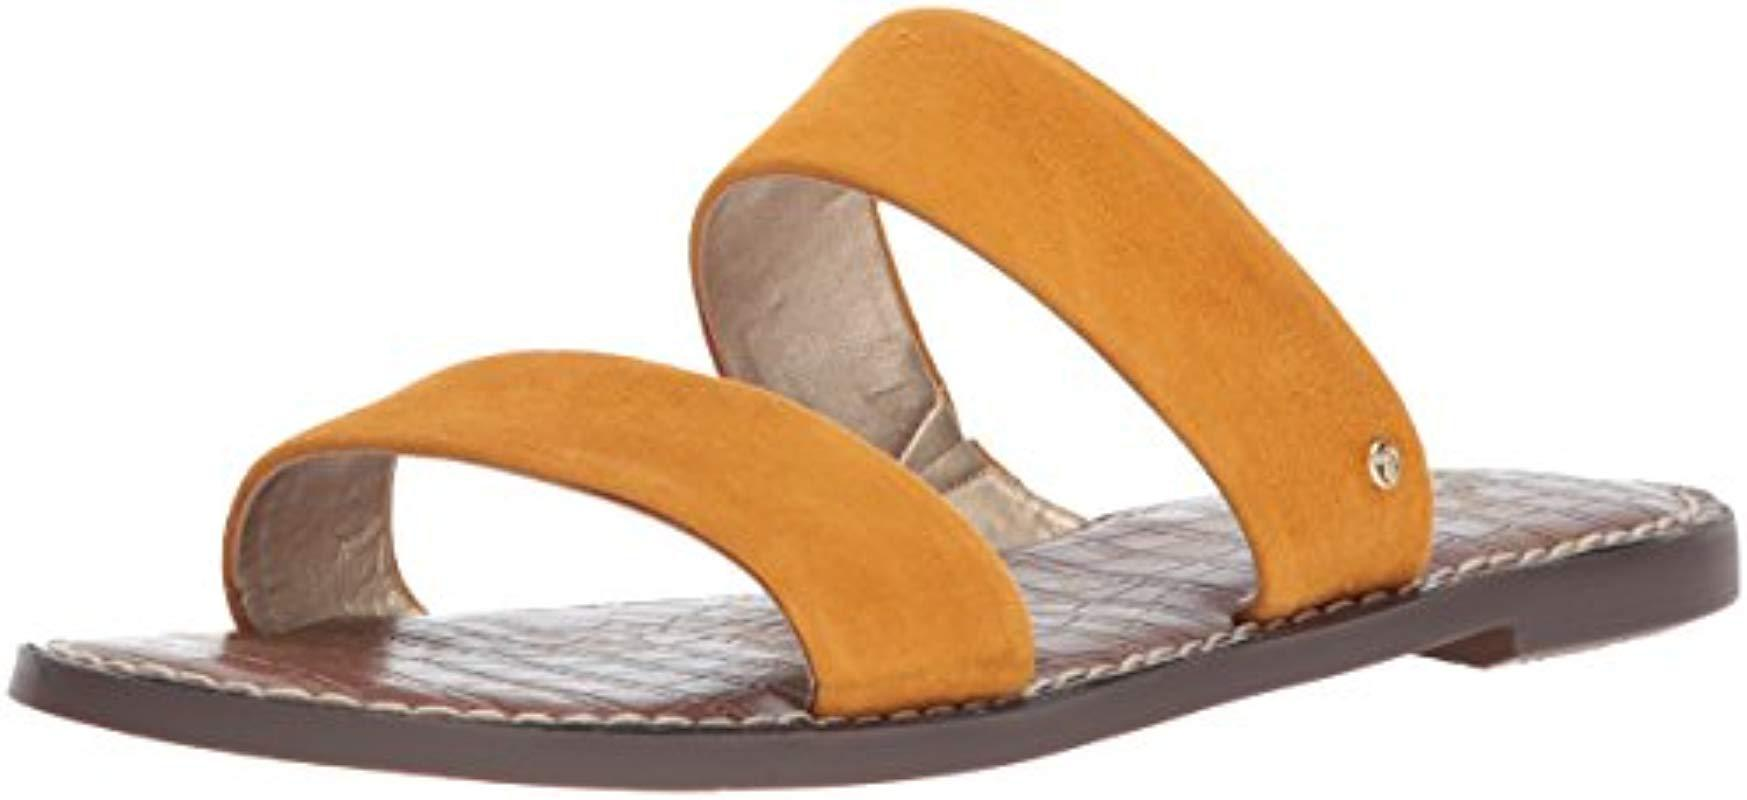 3b72eafdbd87 Lyst - Sam Edelman Gala Slide Sandal in Yellow - Save 31%